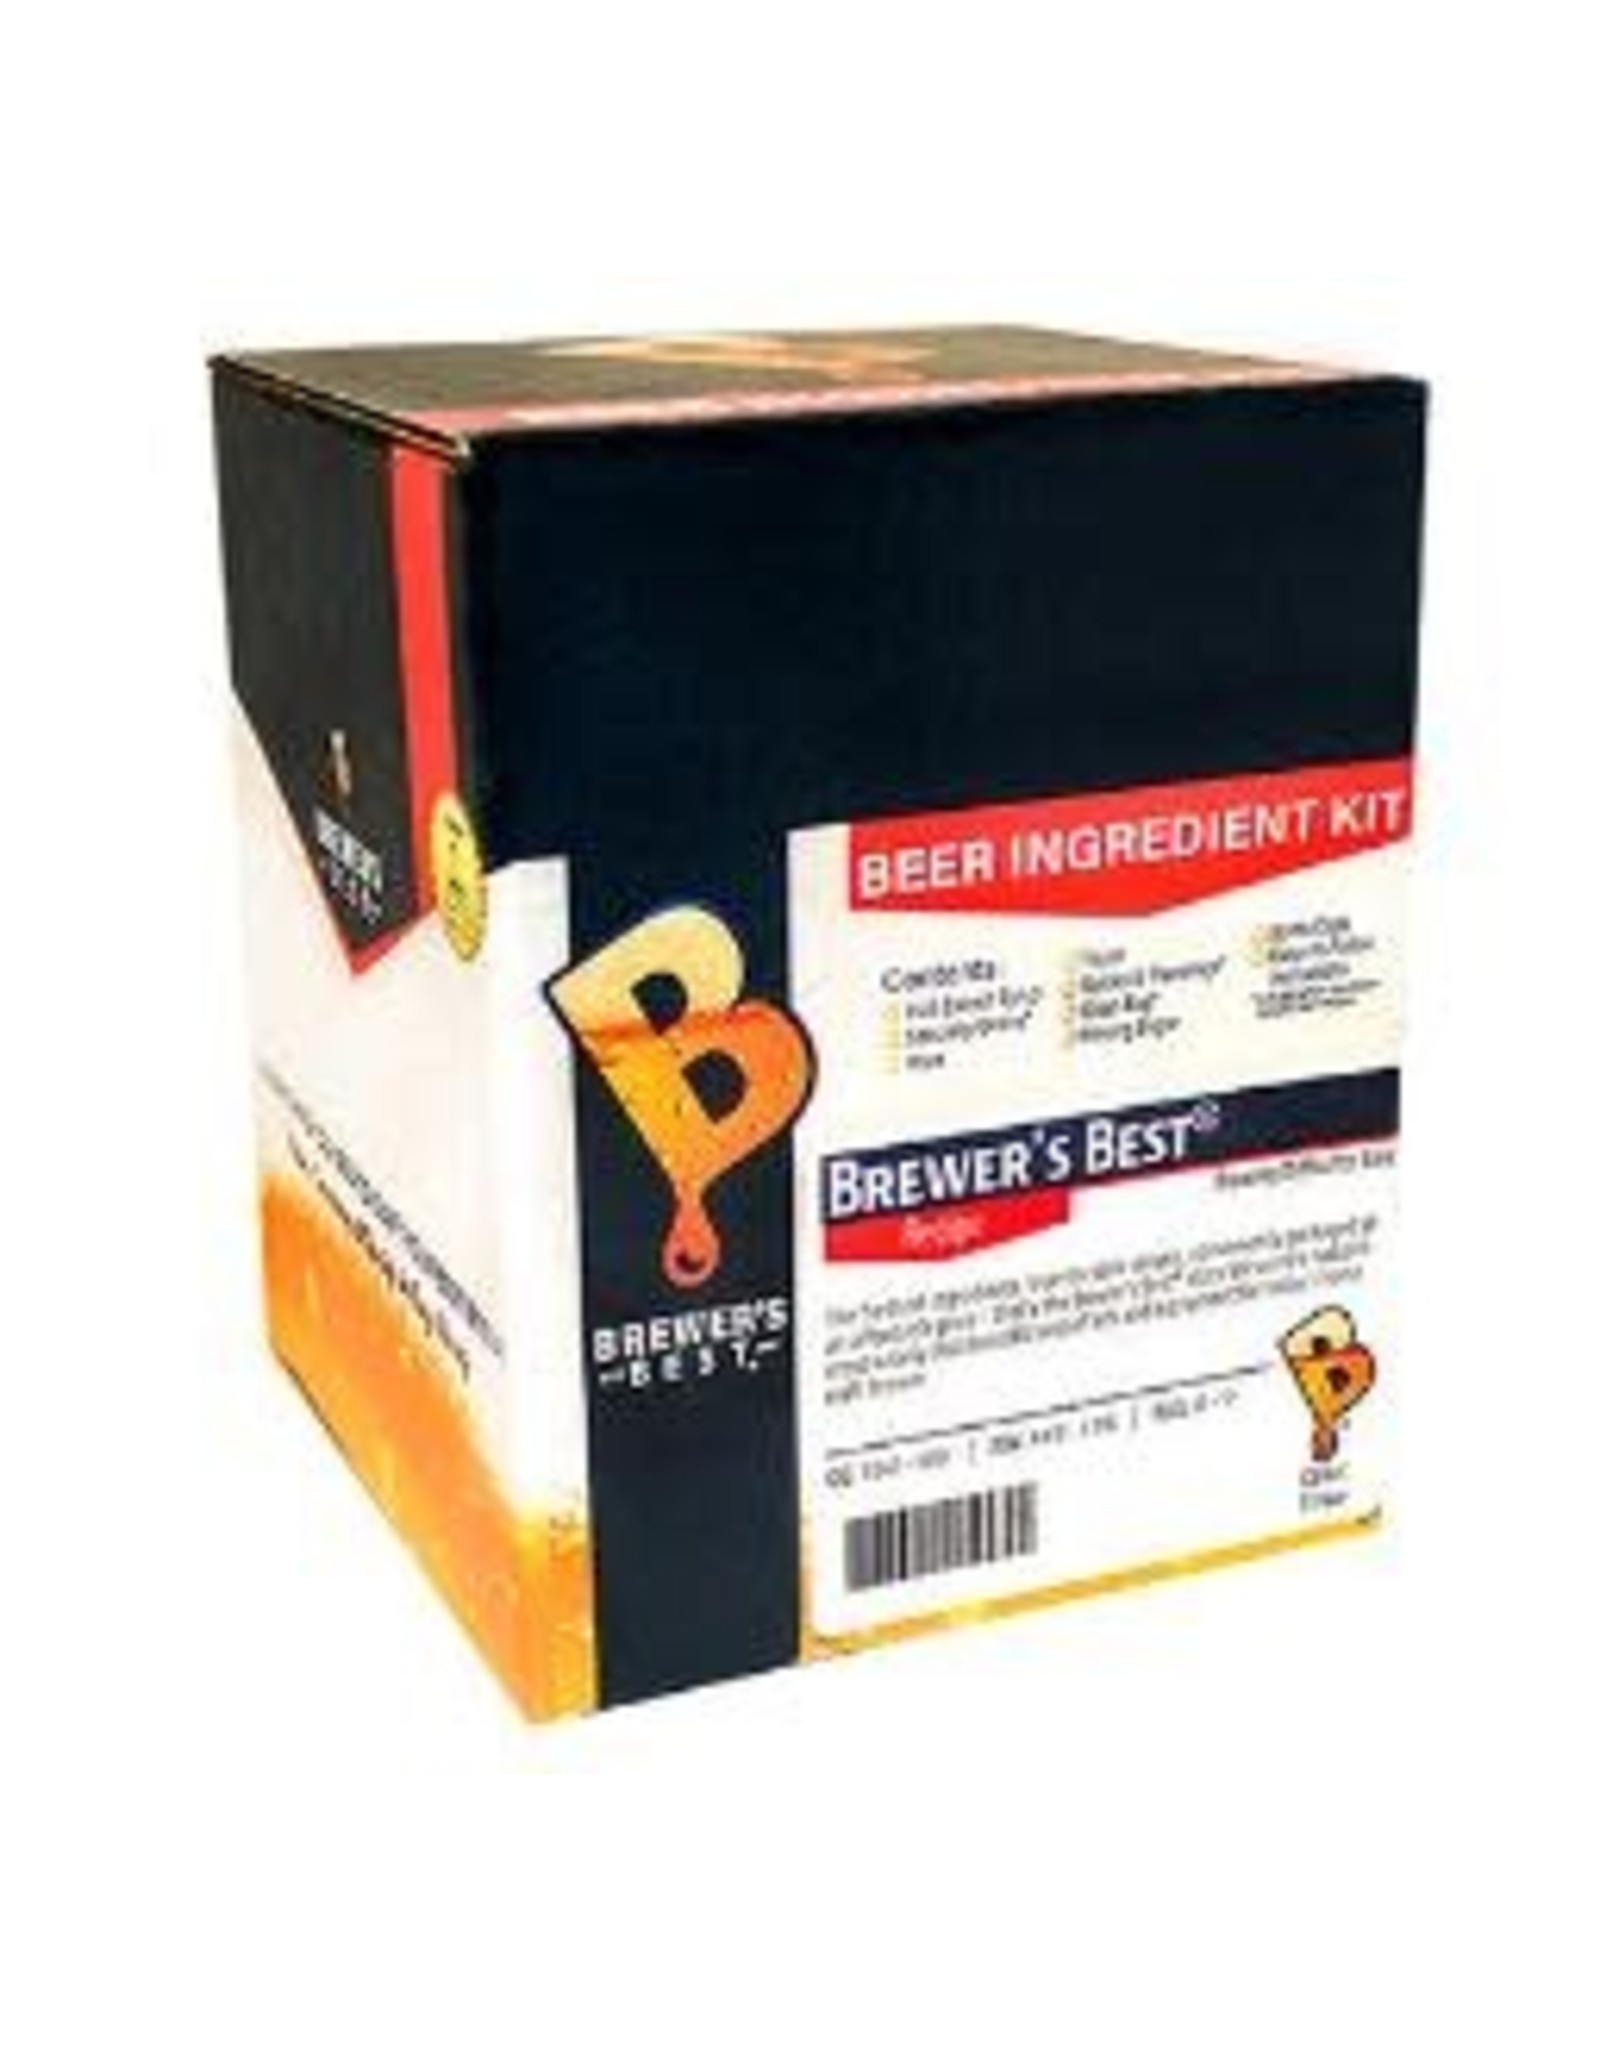 BREWERS BEST 1402 IPA ONE GALLON KIT